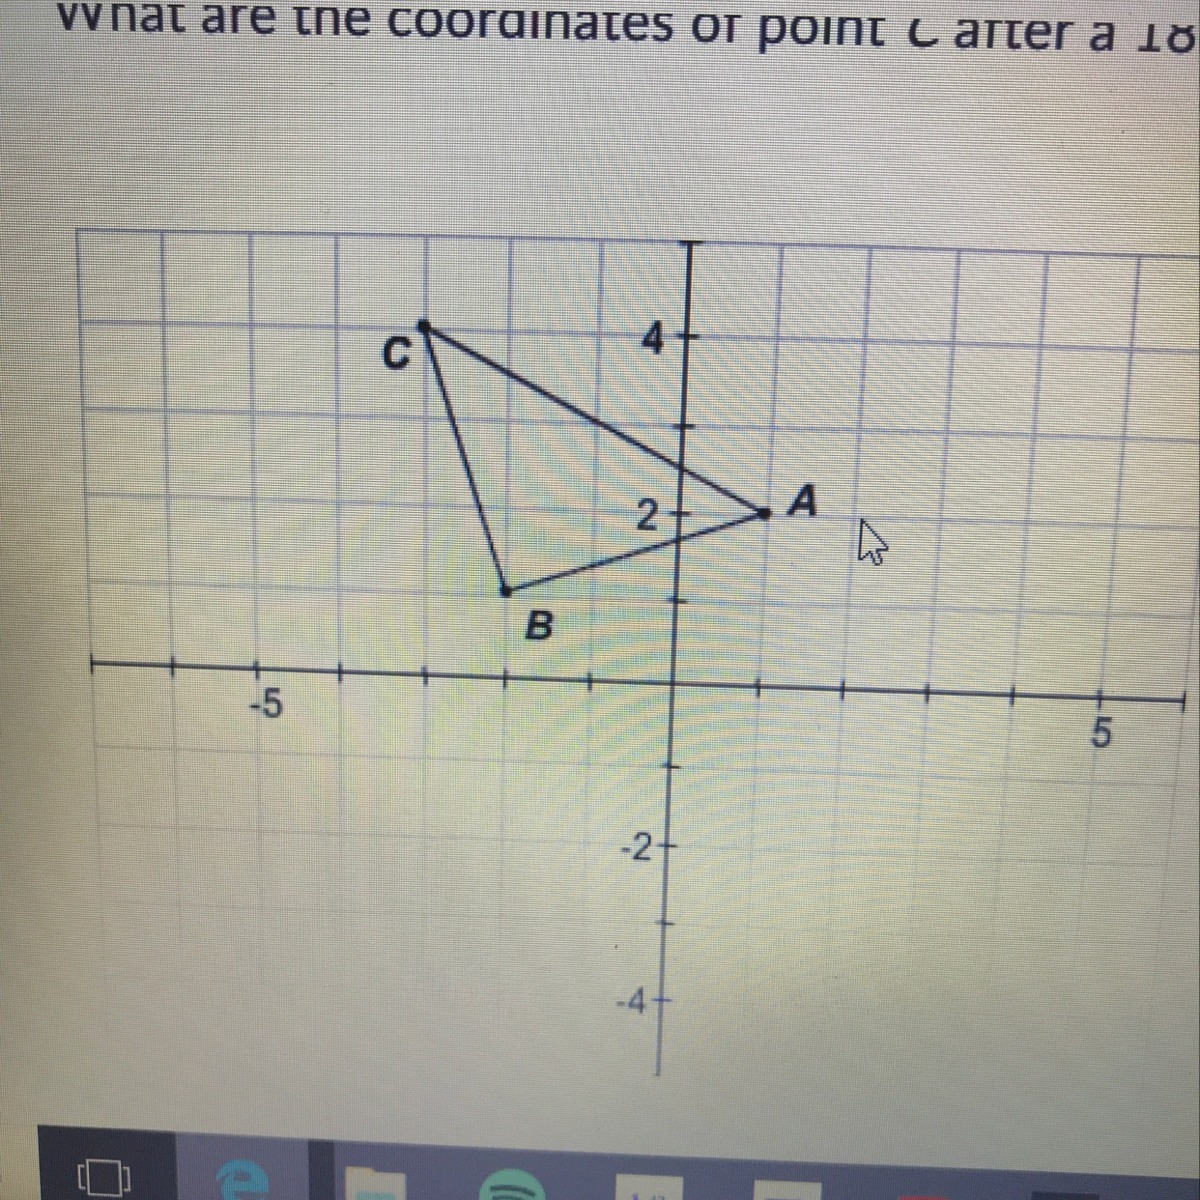 What Are The Coordinates Of Point C After A 180 Rotation